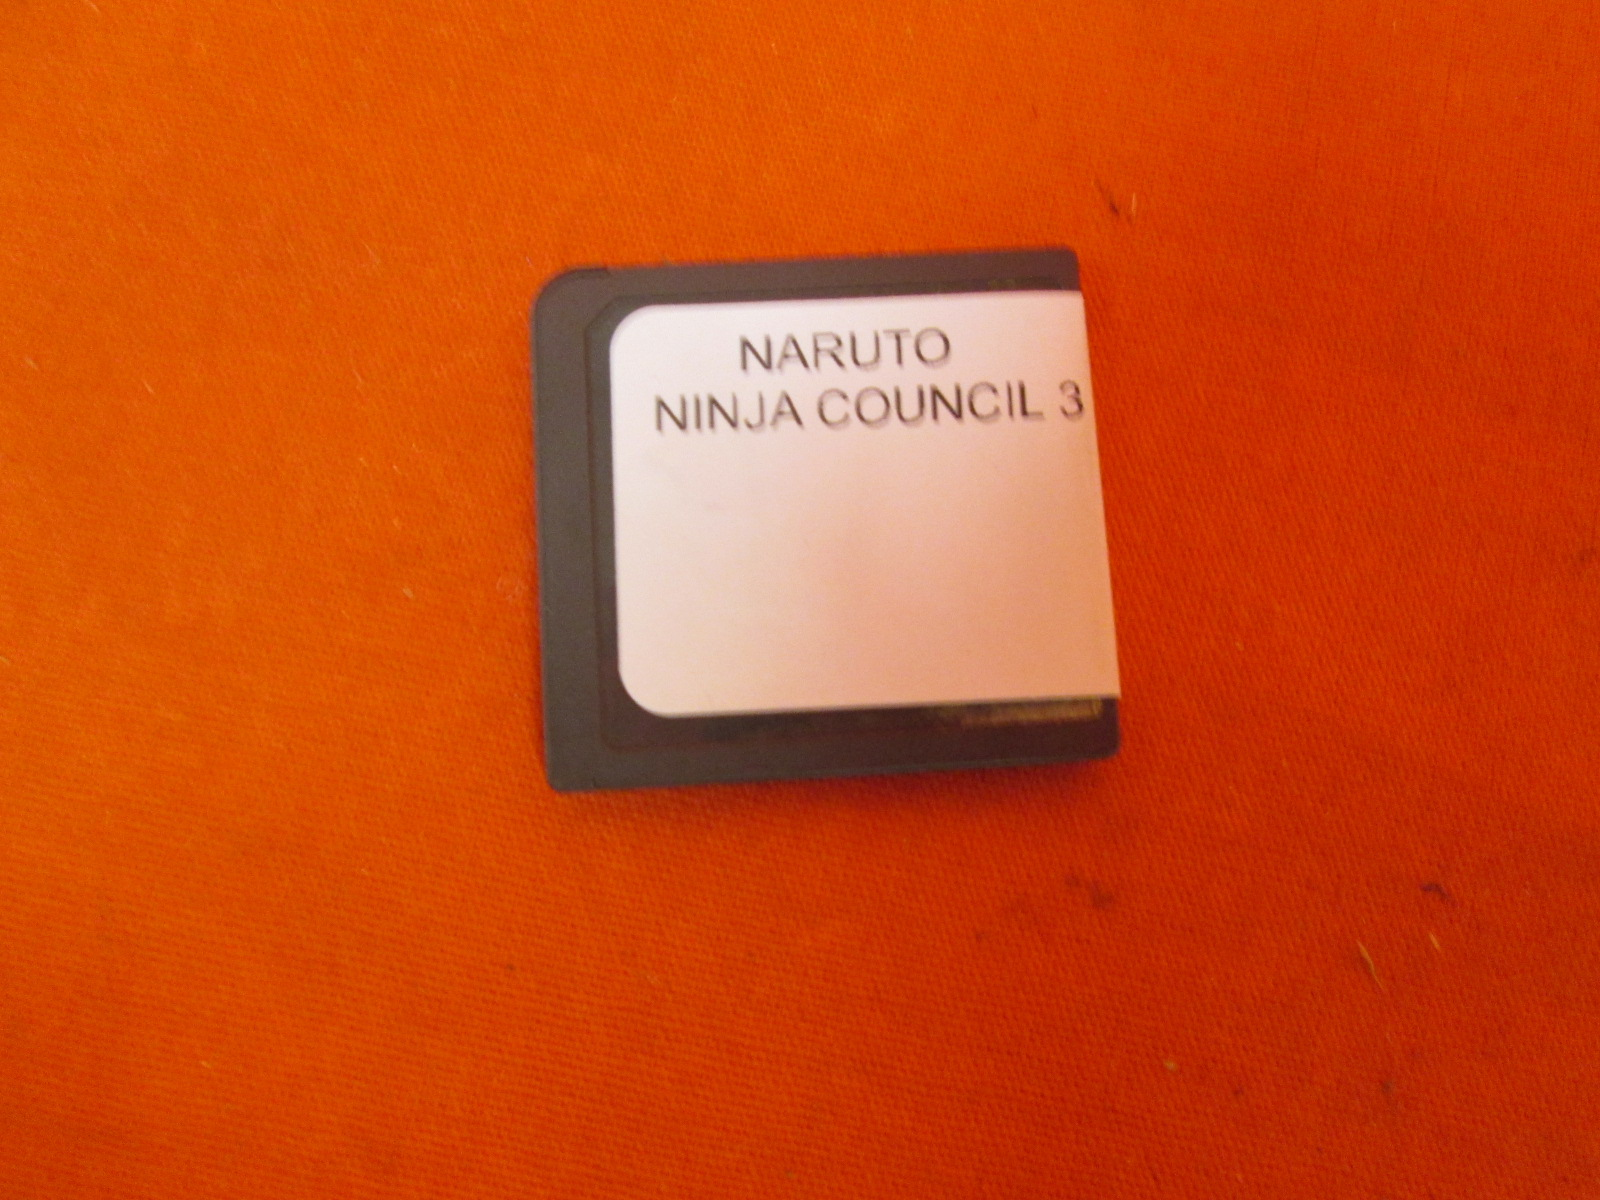 Naruto: Ninja Council 3 For Nintendo DS DSi 3DS 2DS